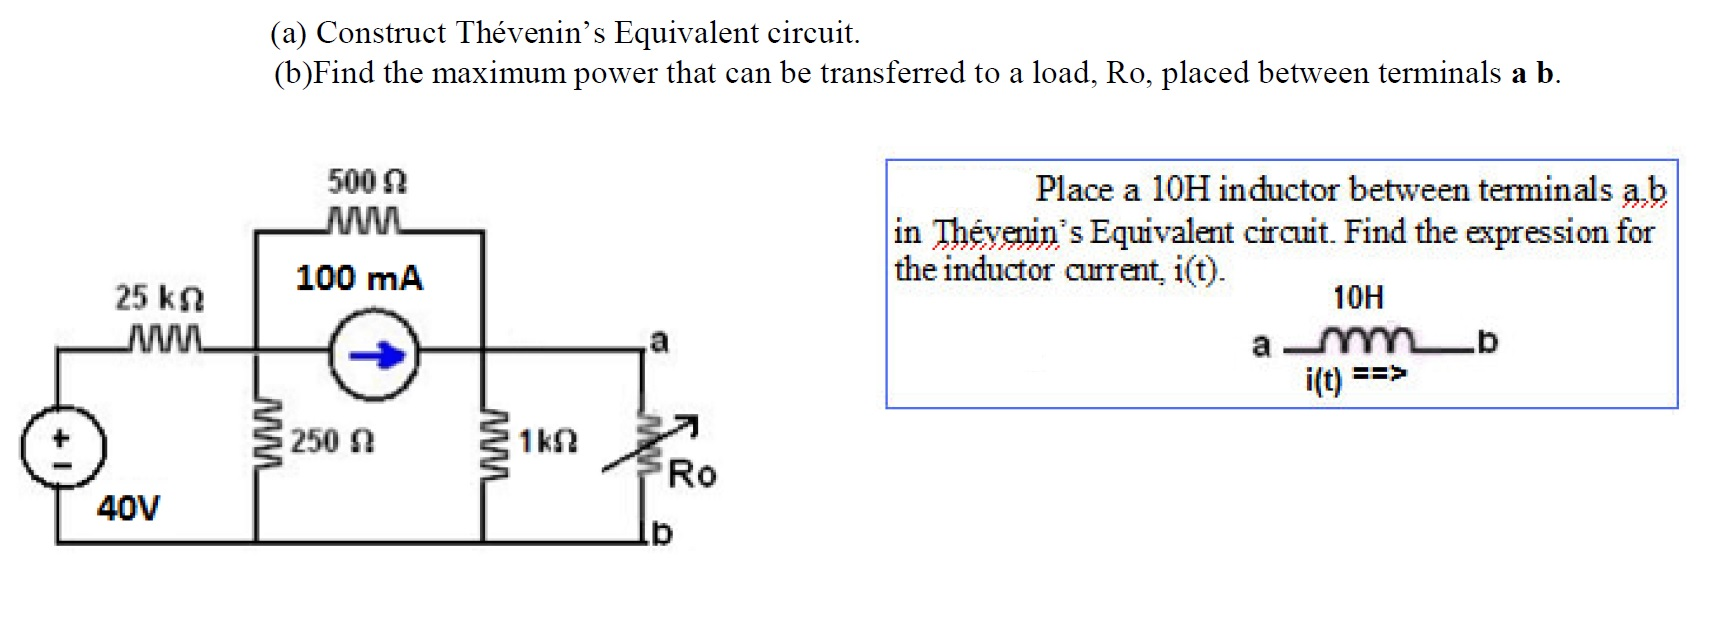 Construct The acute venin's Equivalent circuit.